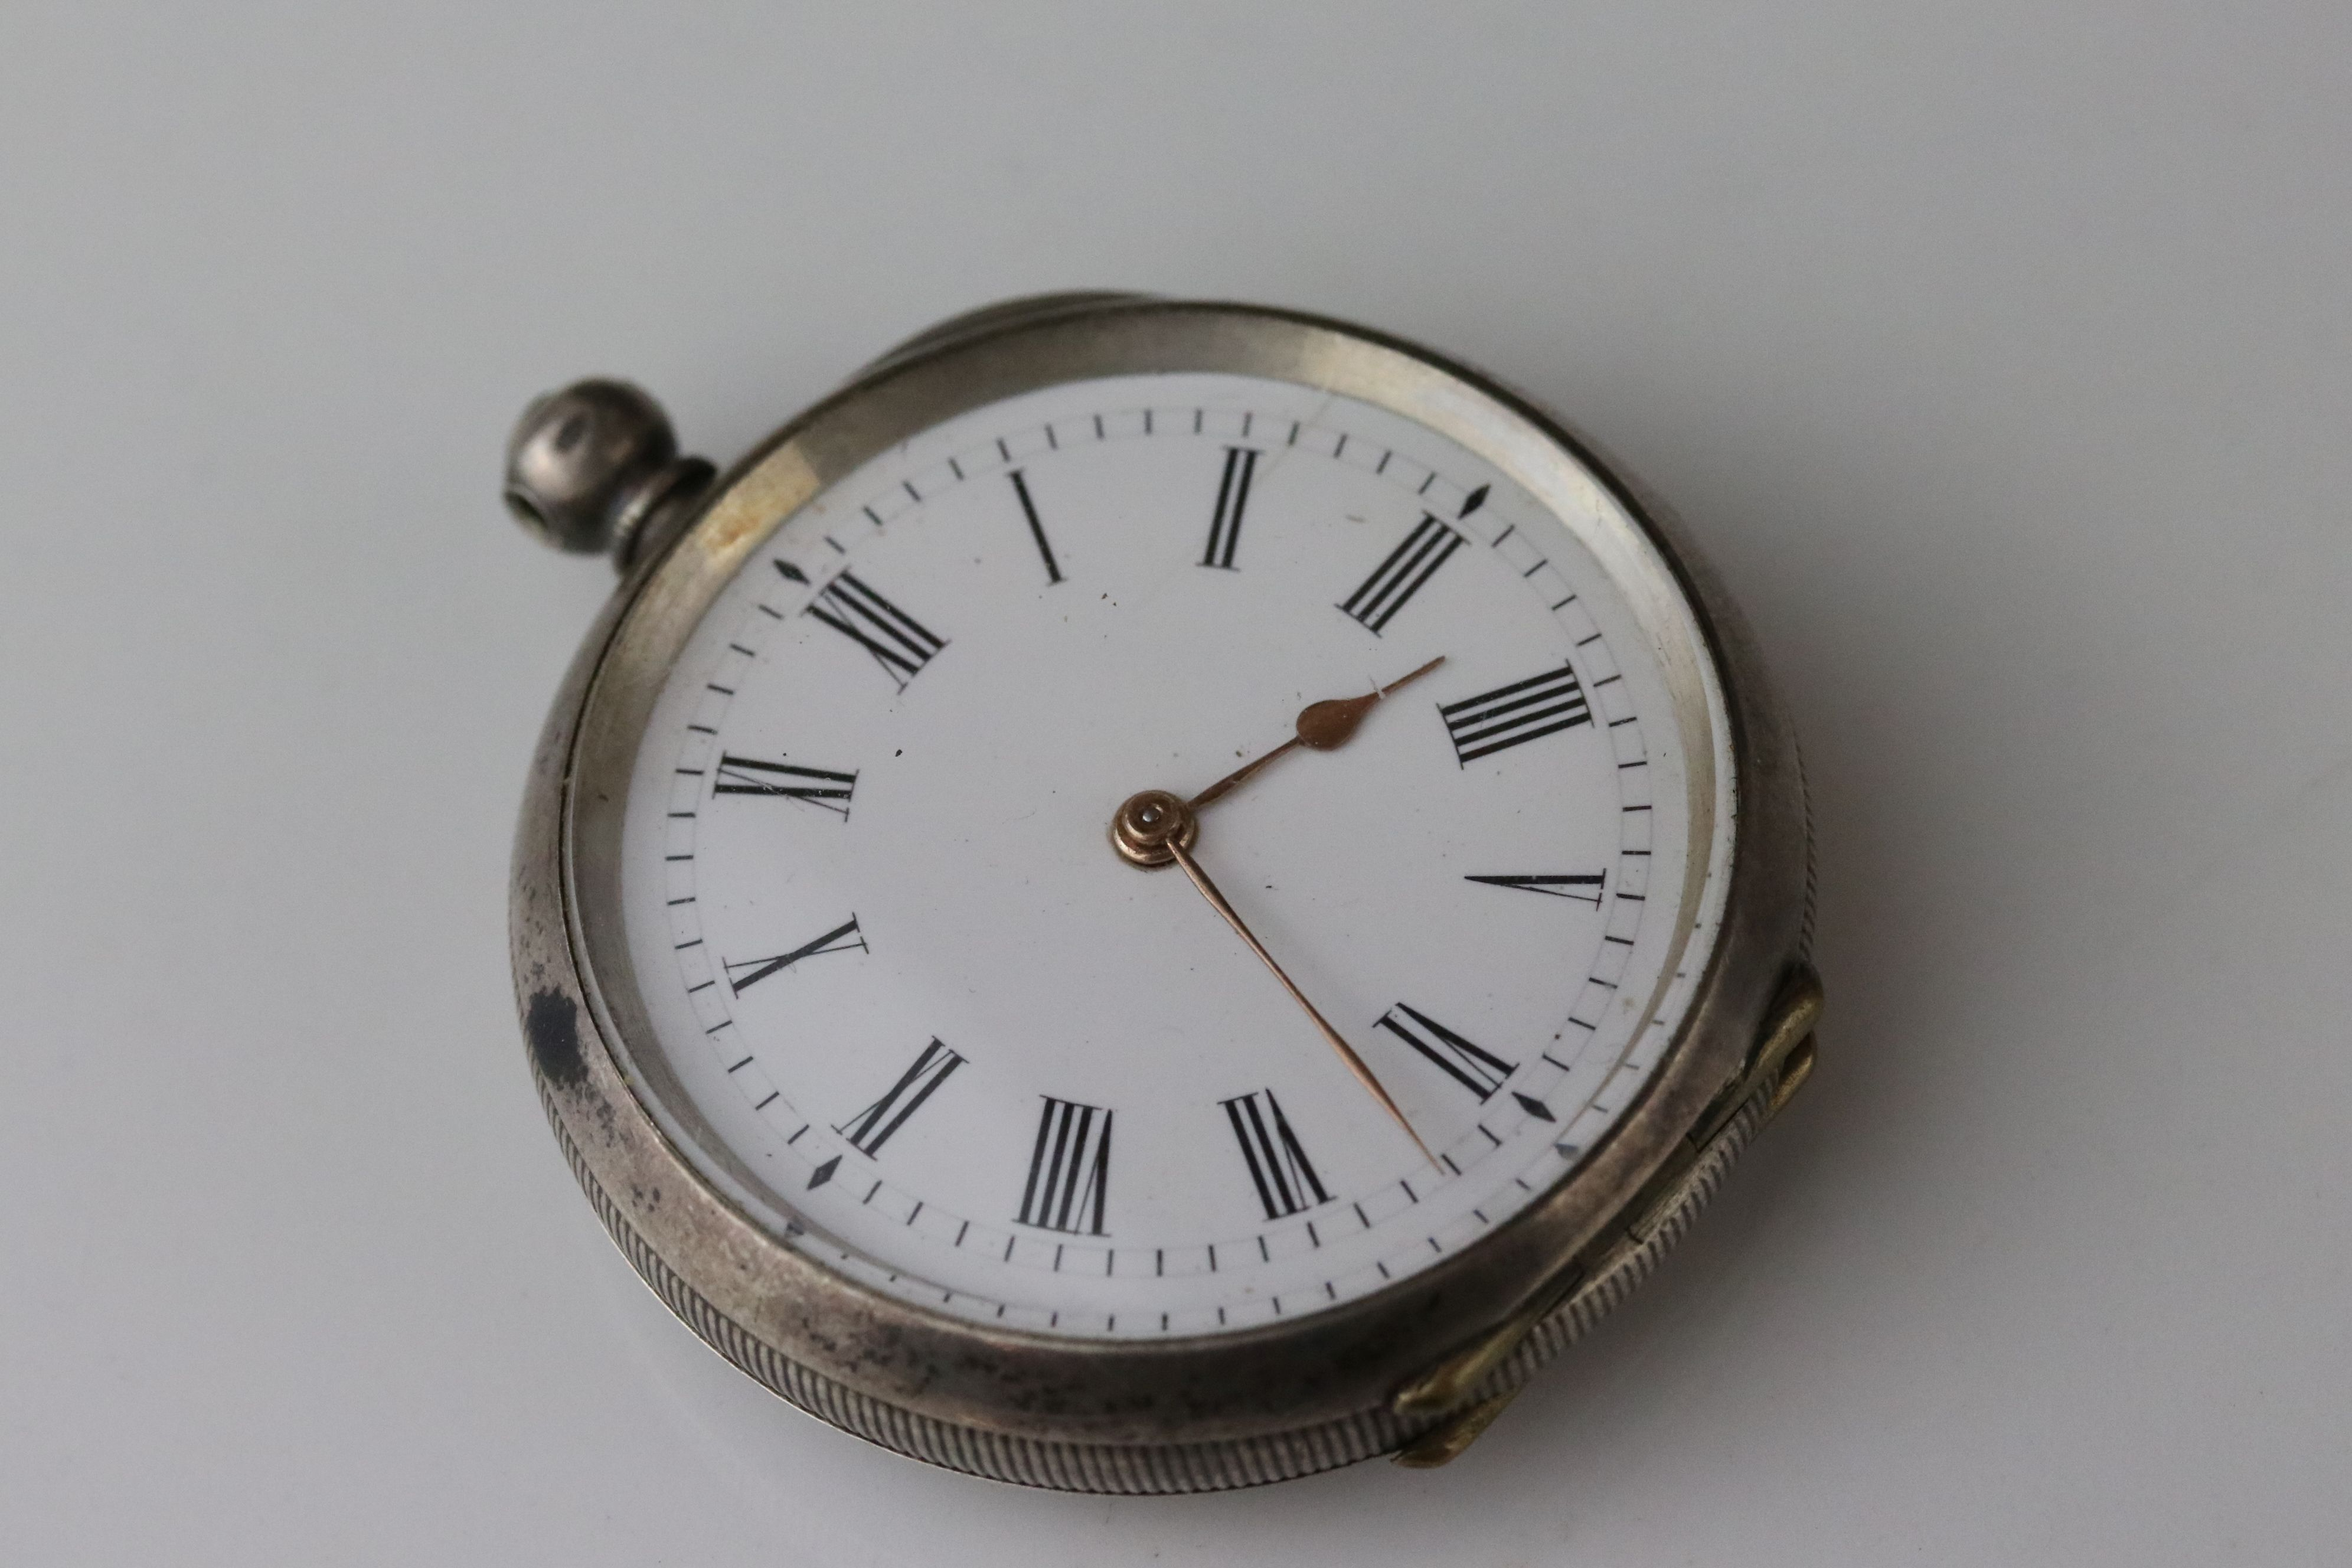 E D Johnson white metal key wind open face pocket watch, white enamel dial and subsidiary dial, - Image 9 of 10